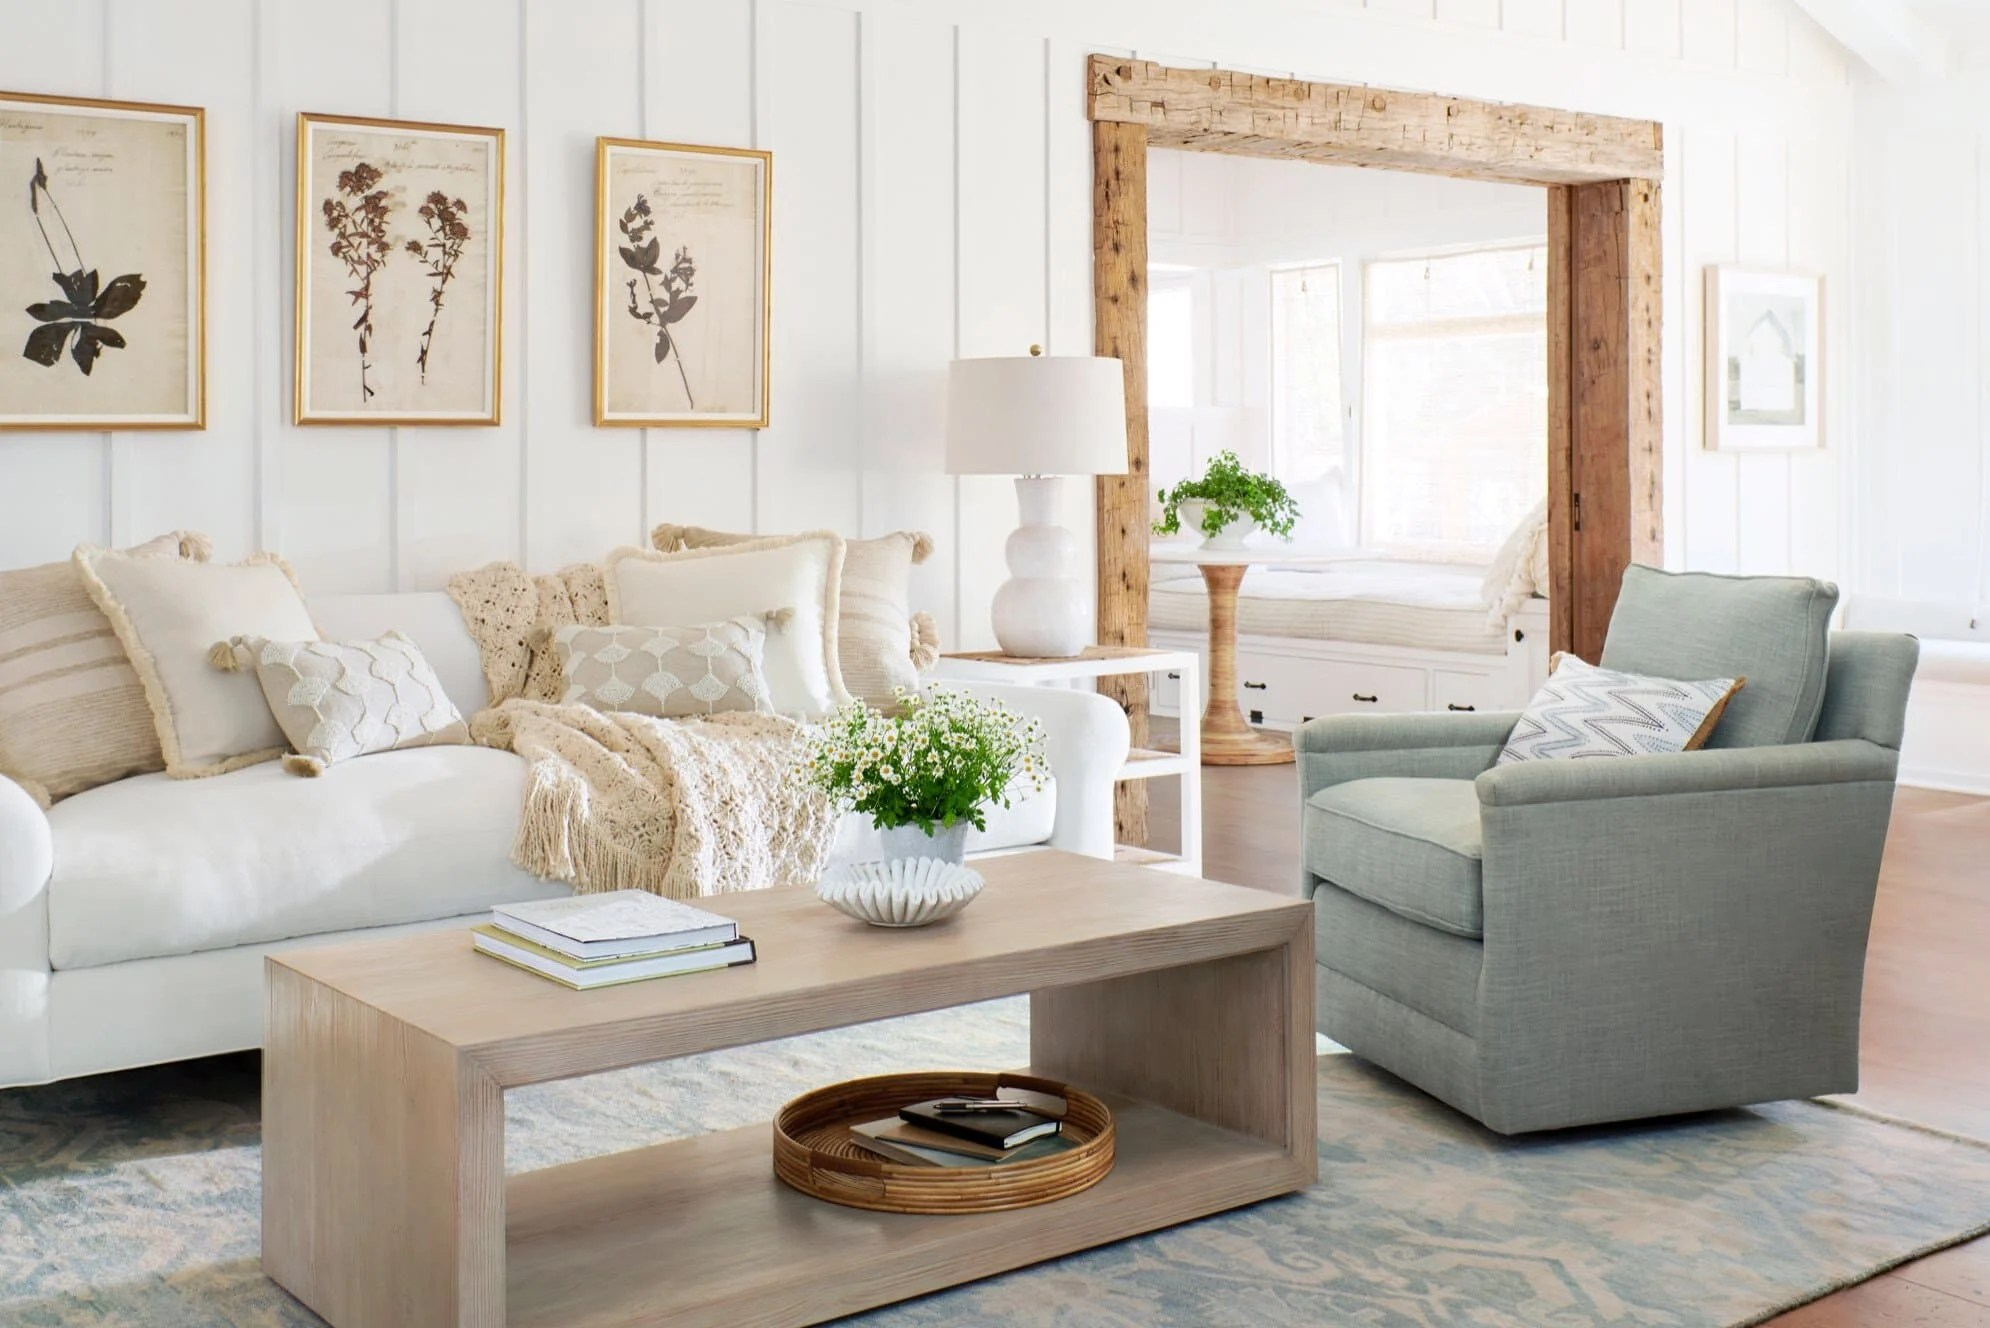 A living room filled with furniture and rustic wood cased opening